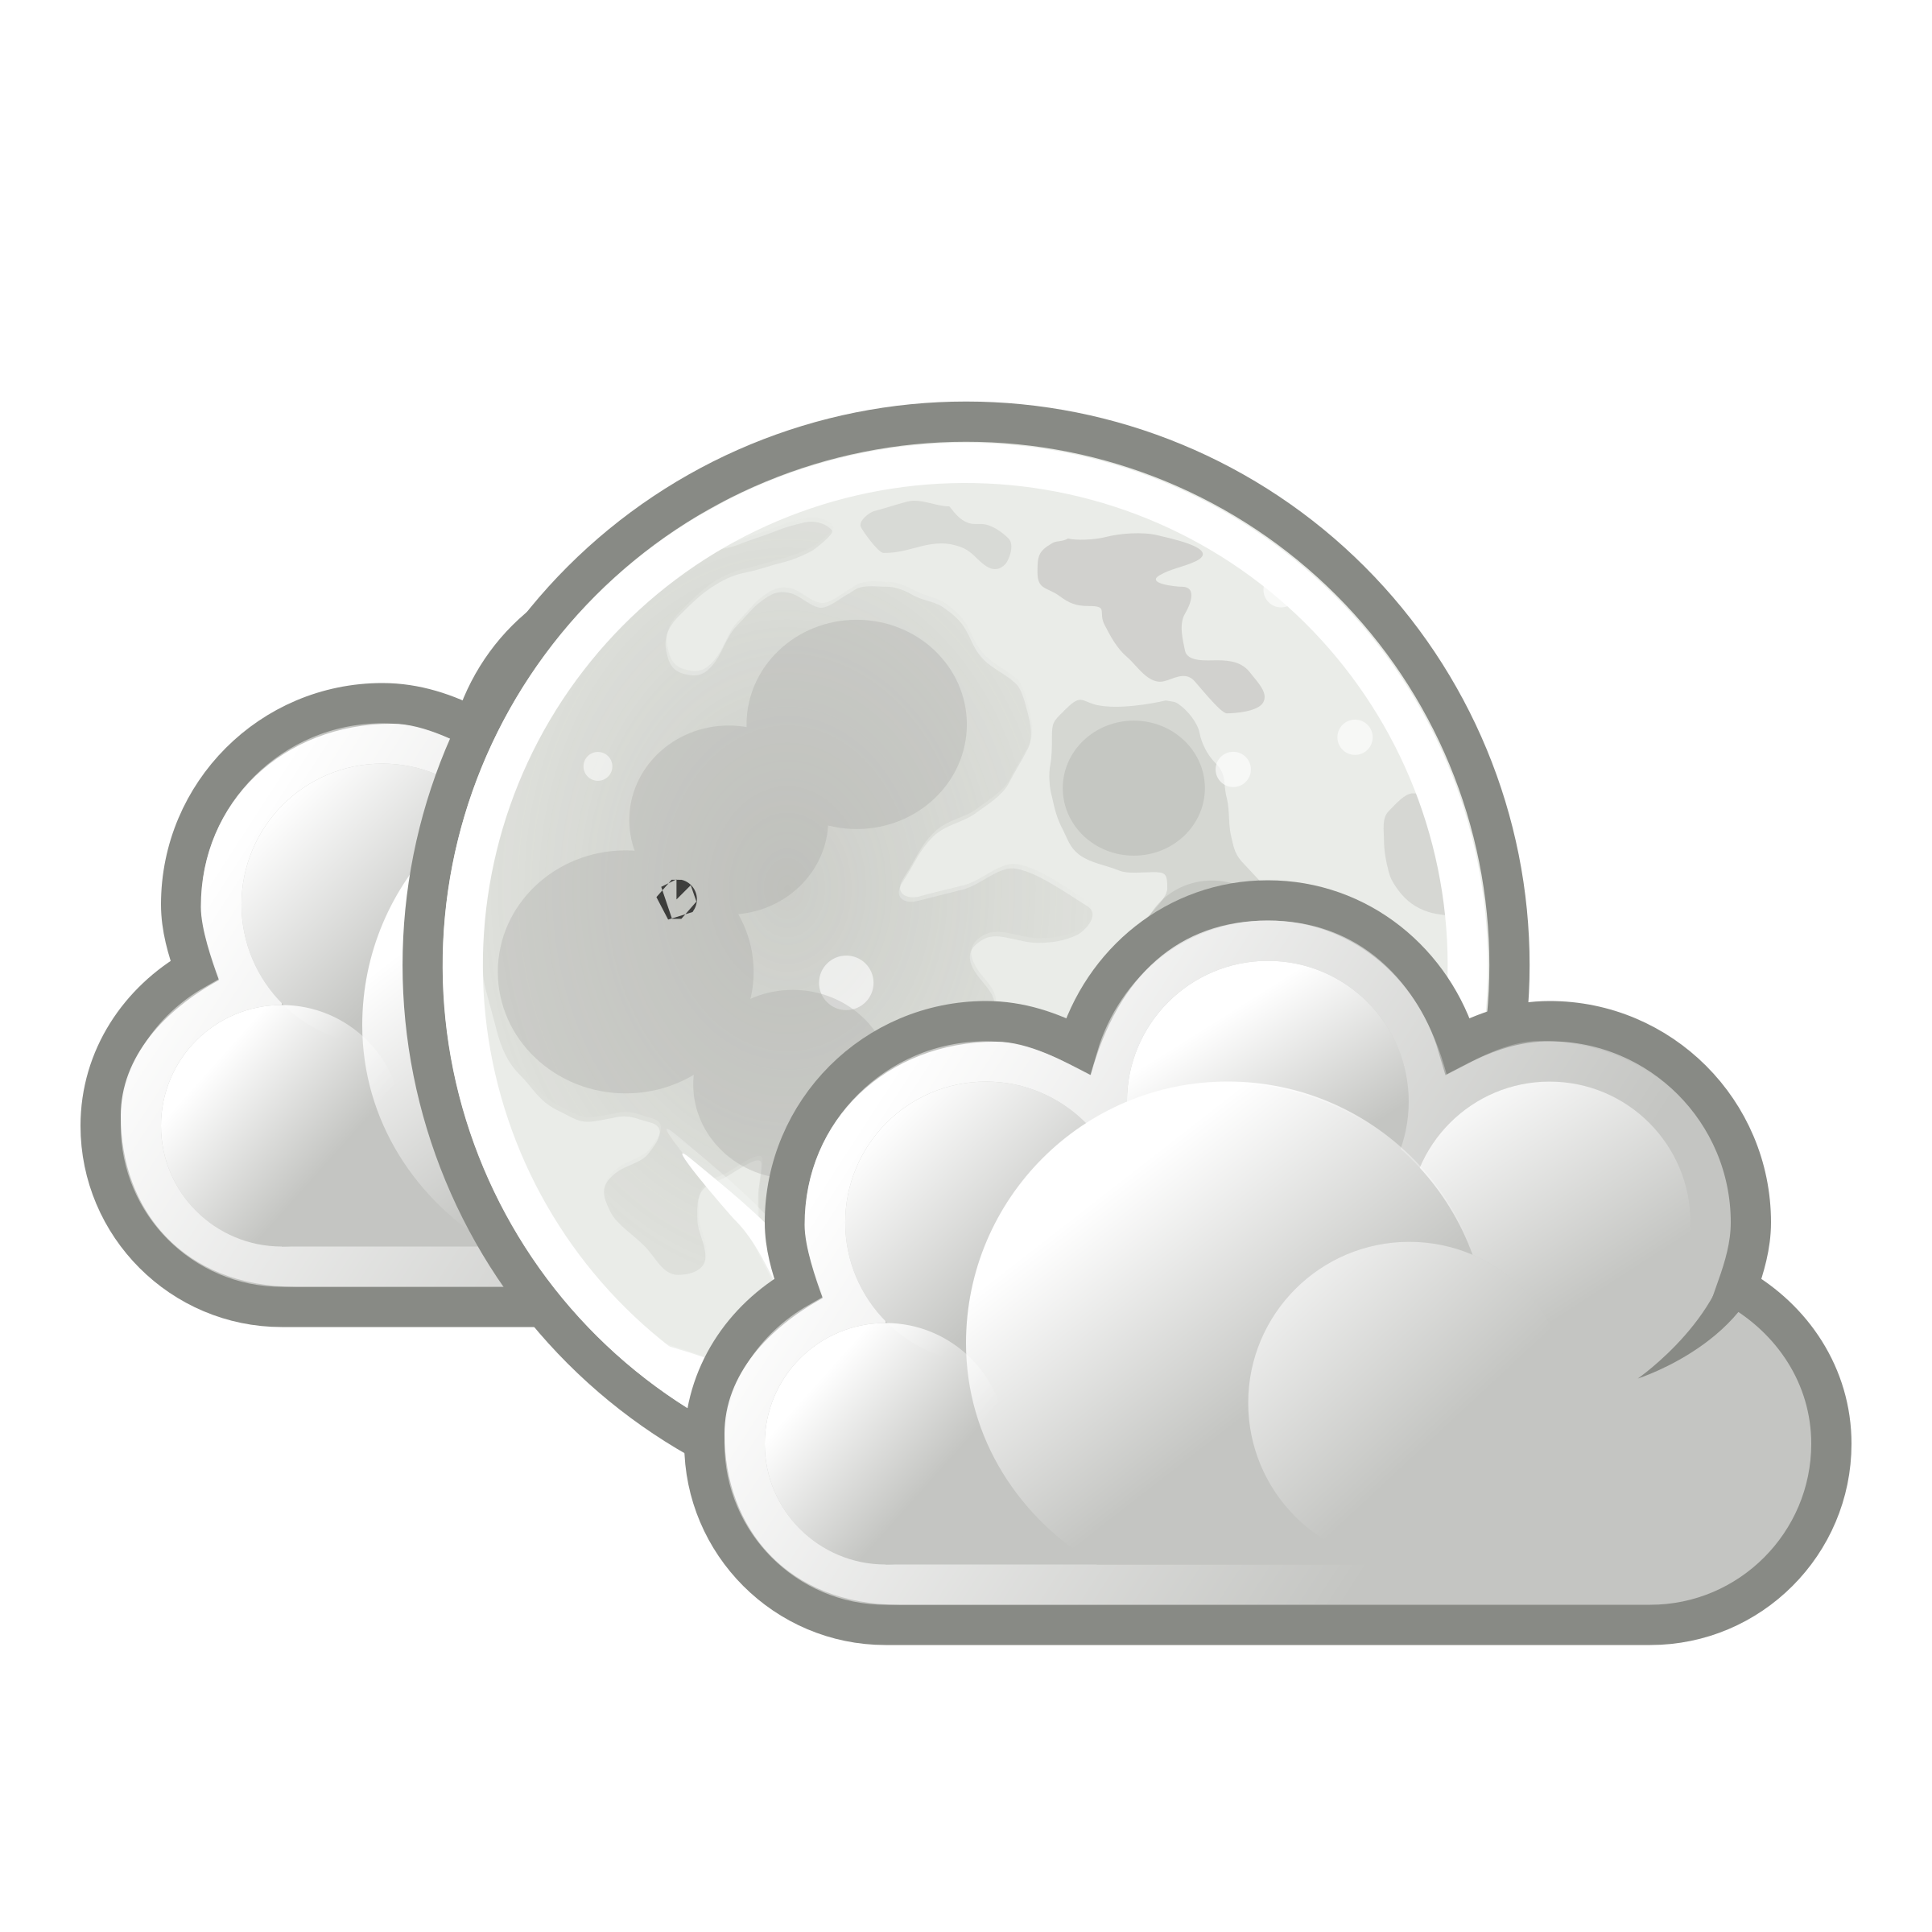 clipart tango weather few clouds night